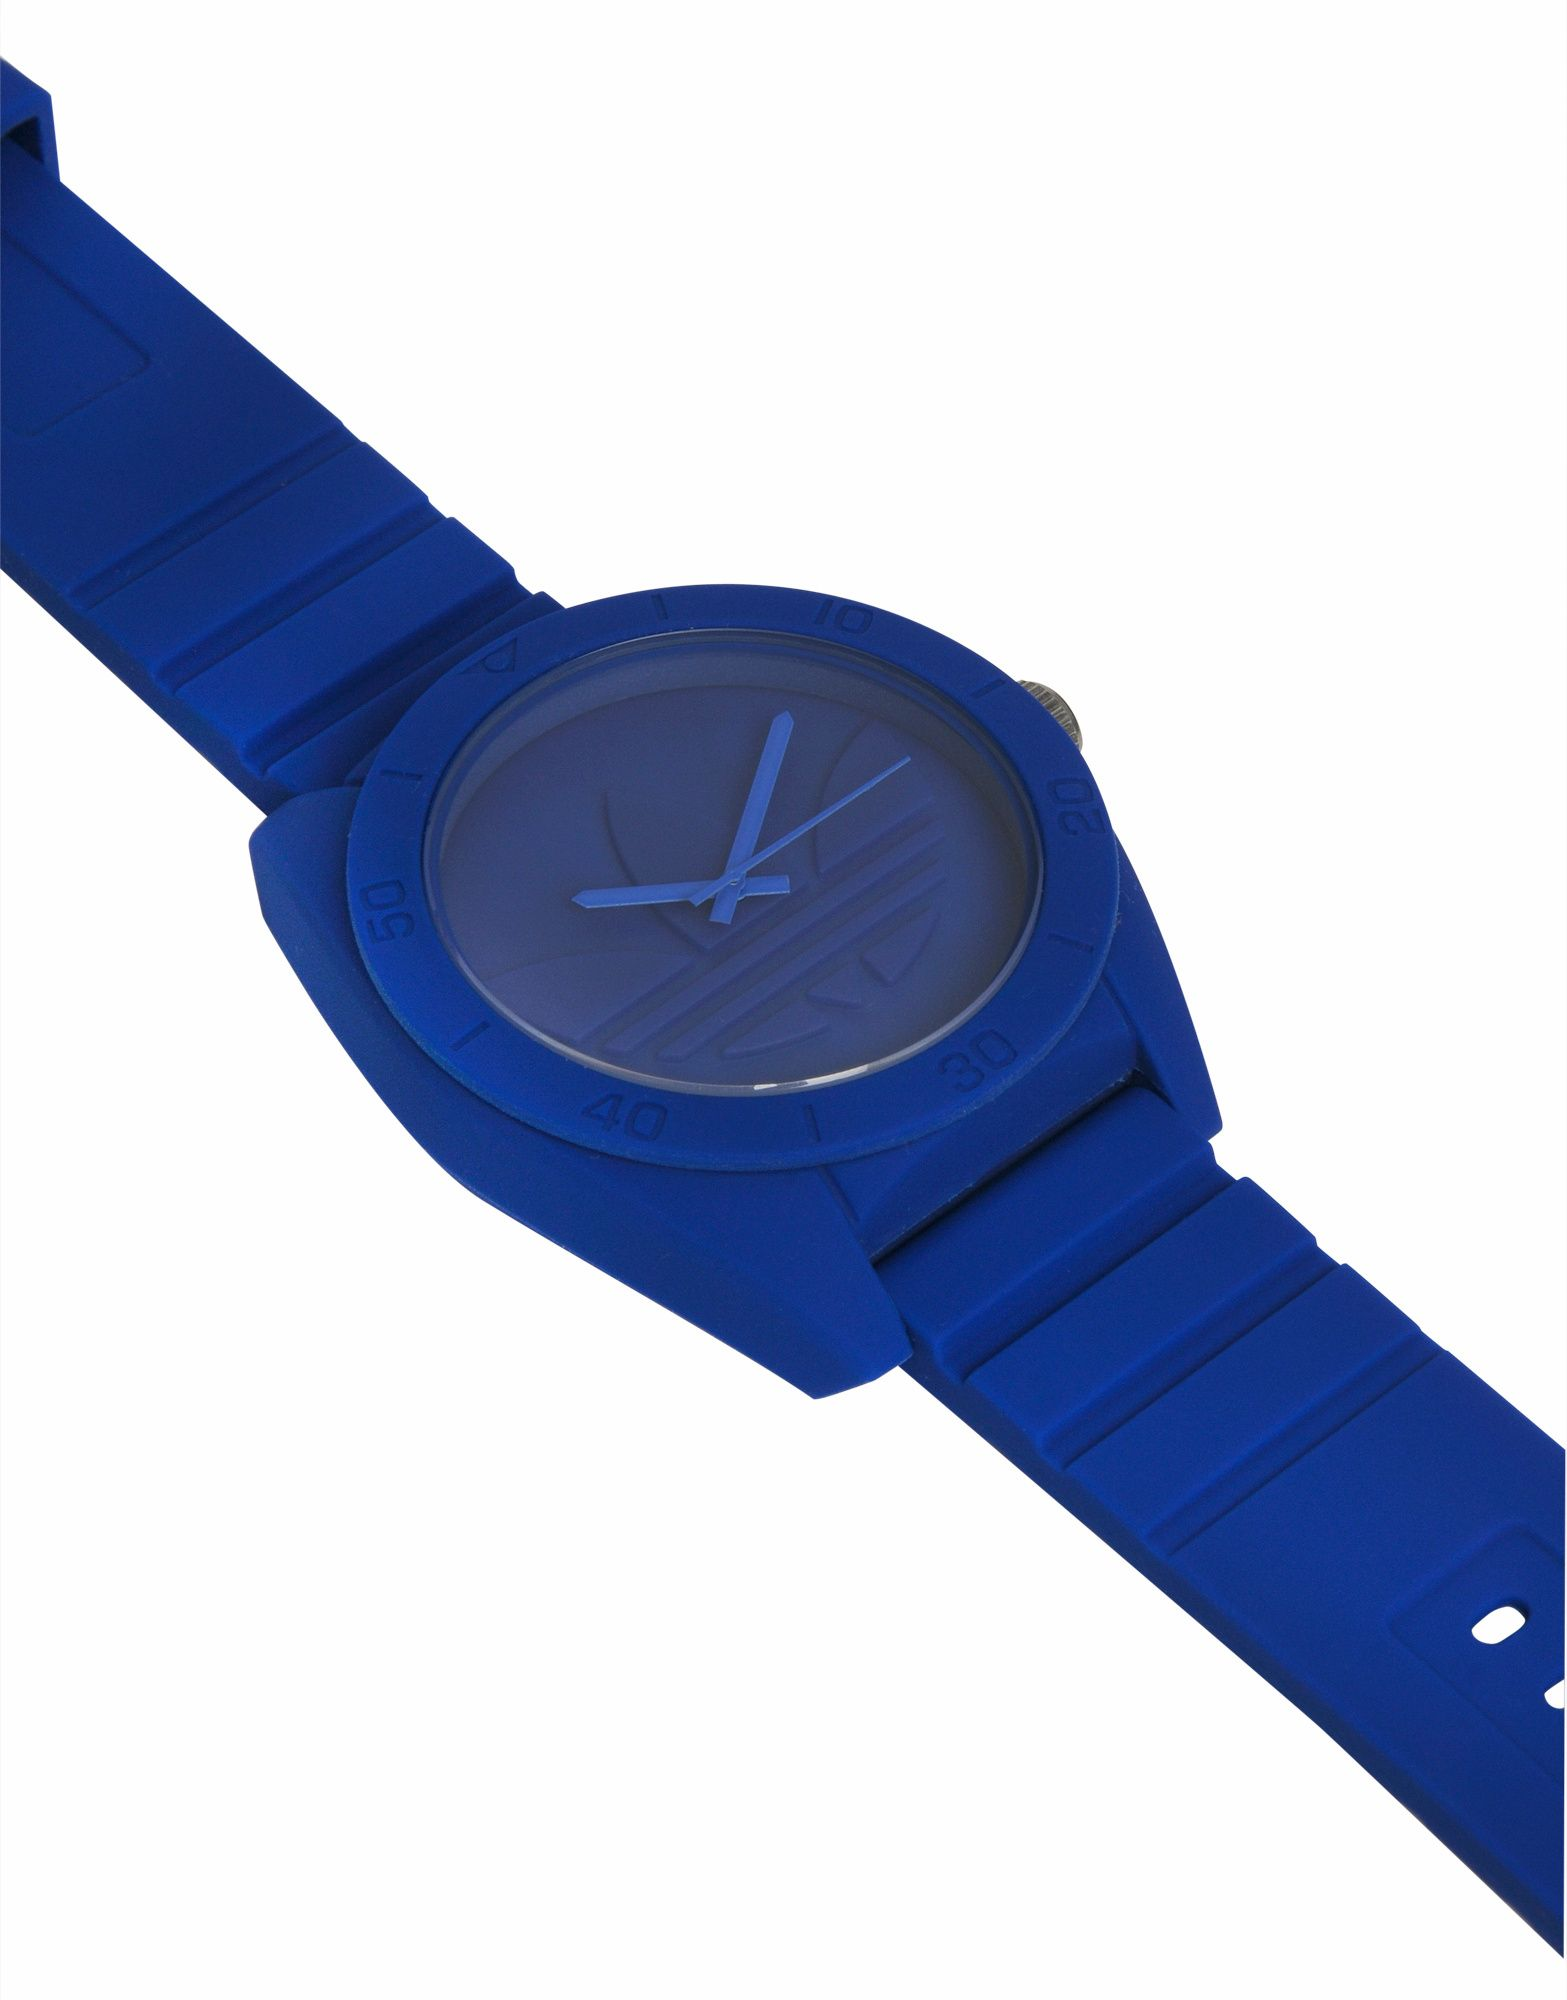 adidas Originals Santiago XL Watch